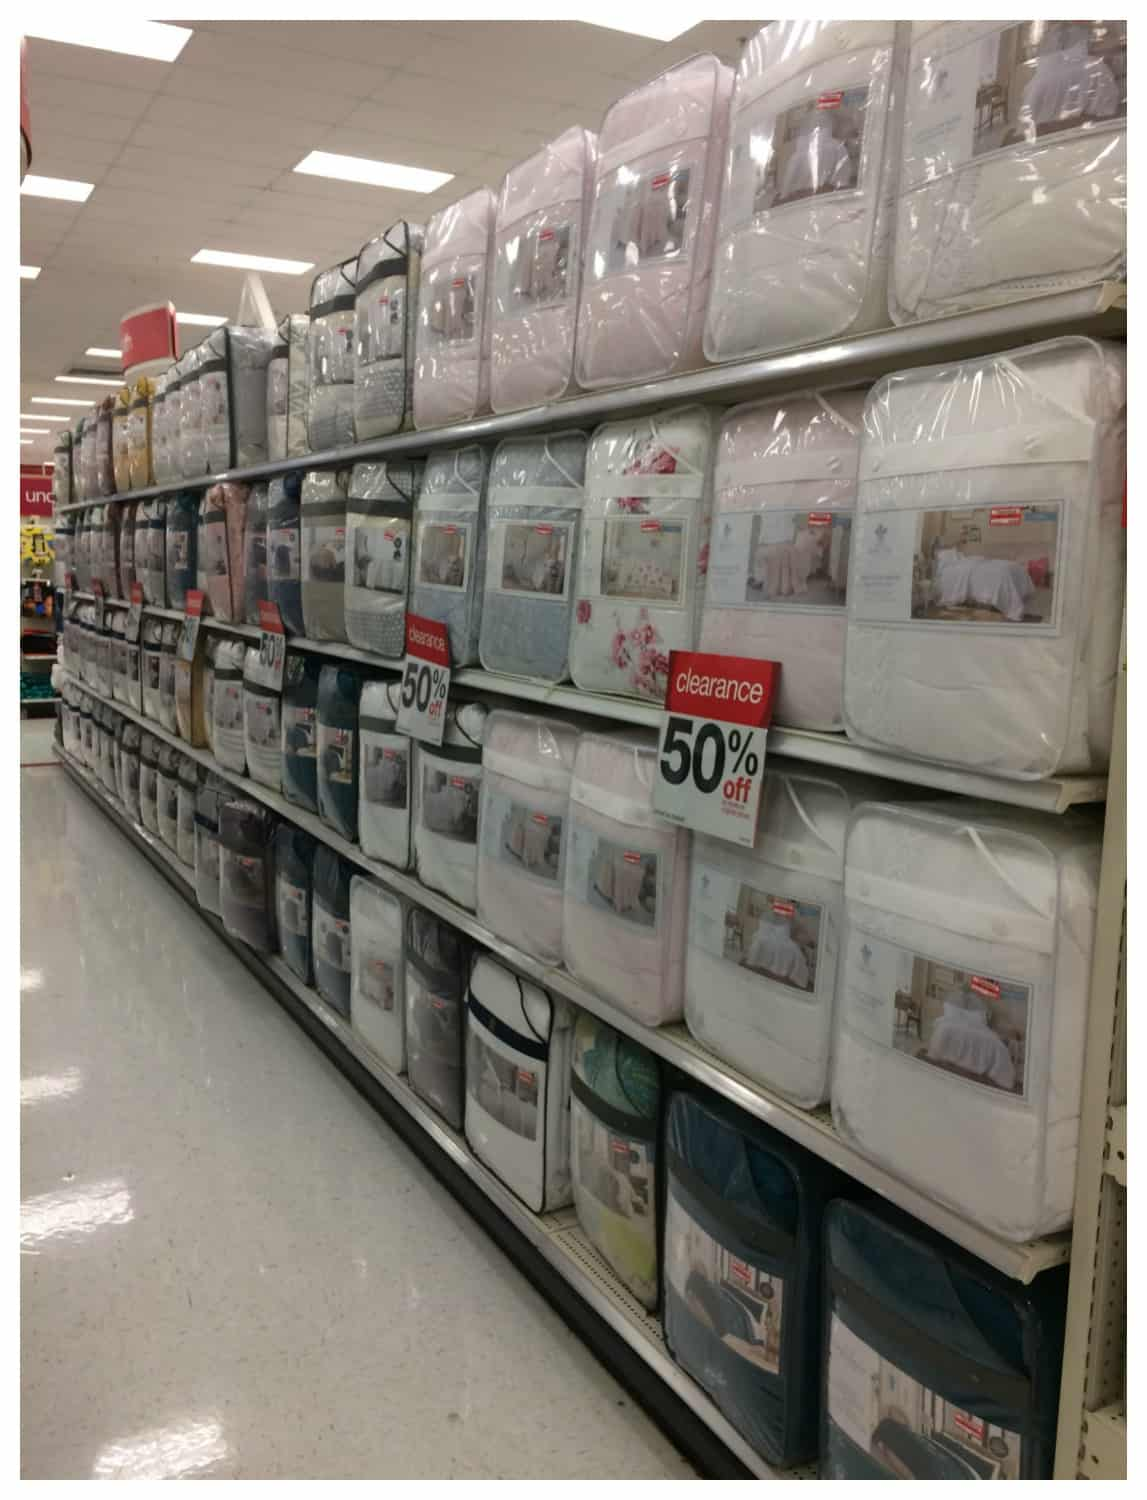 Target Clearance Report Bedding Star Wars Stuff And